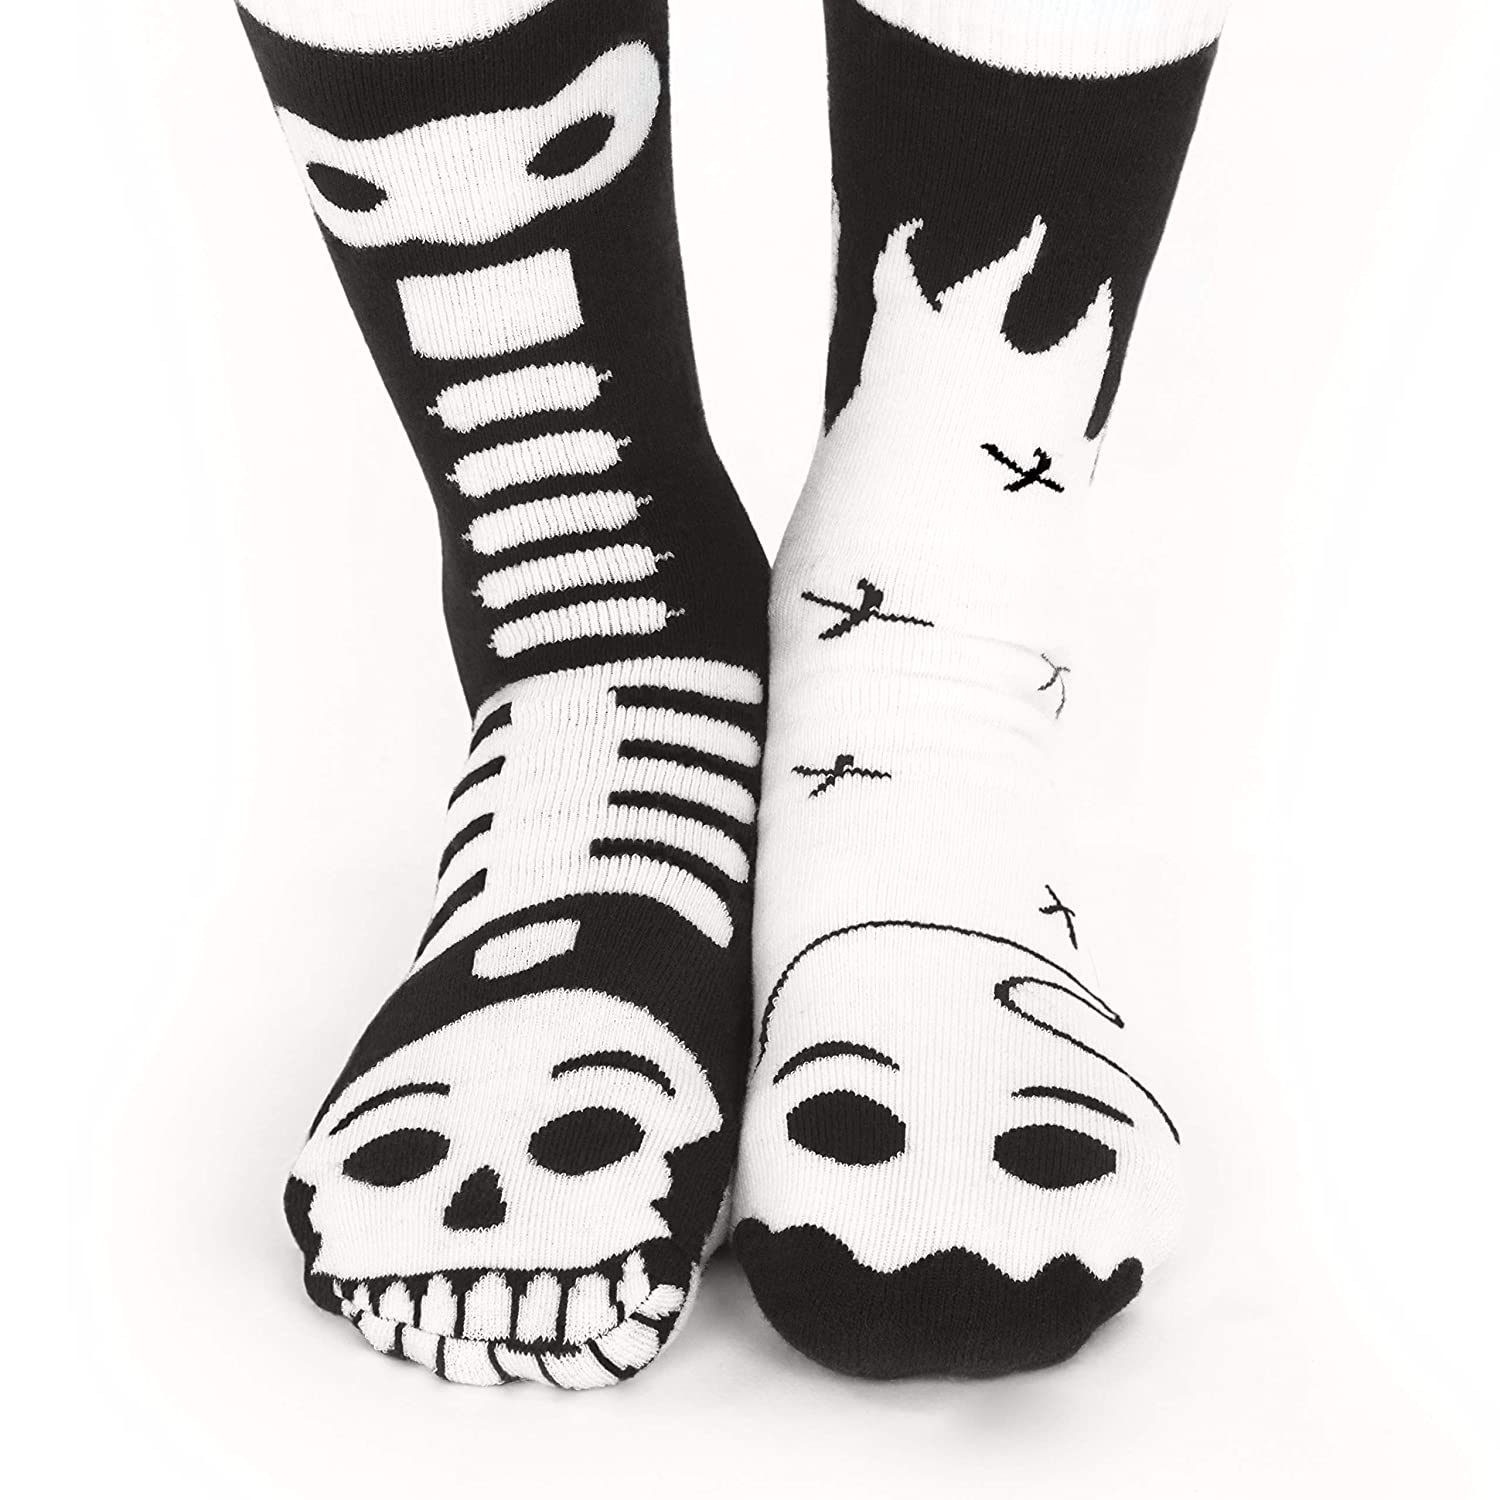 Ghost /& Skeleton Halloween Mismatched Glow In The Dark Socks Boys Girls Age 8-12